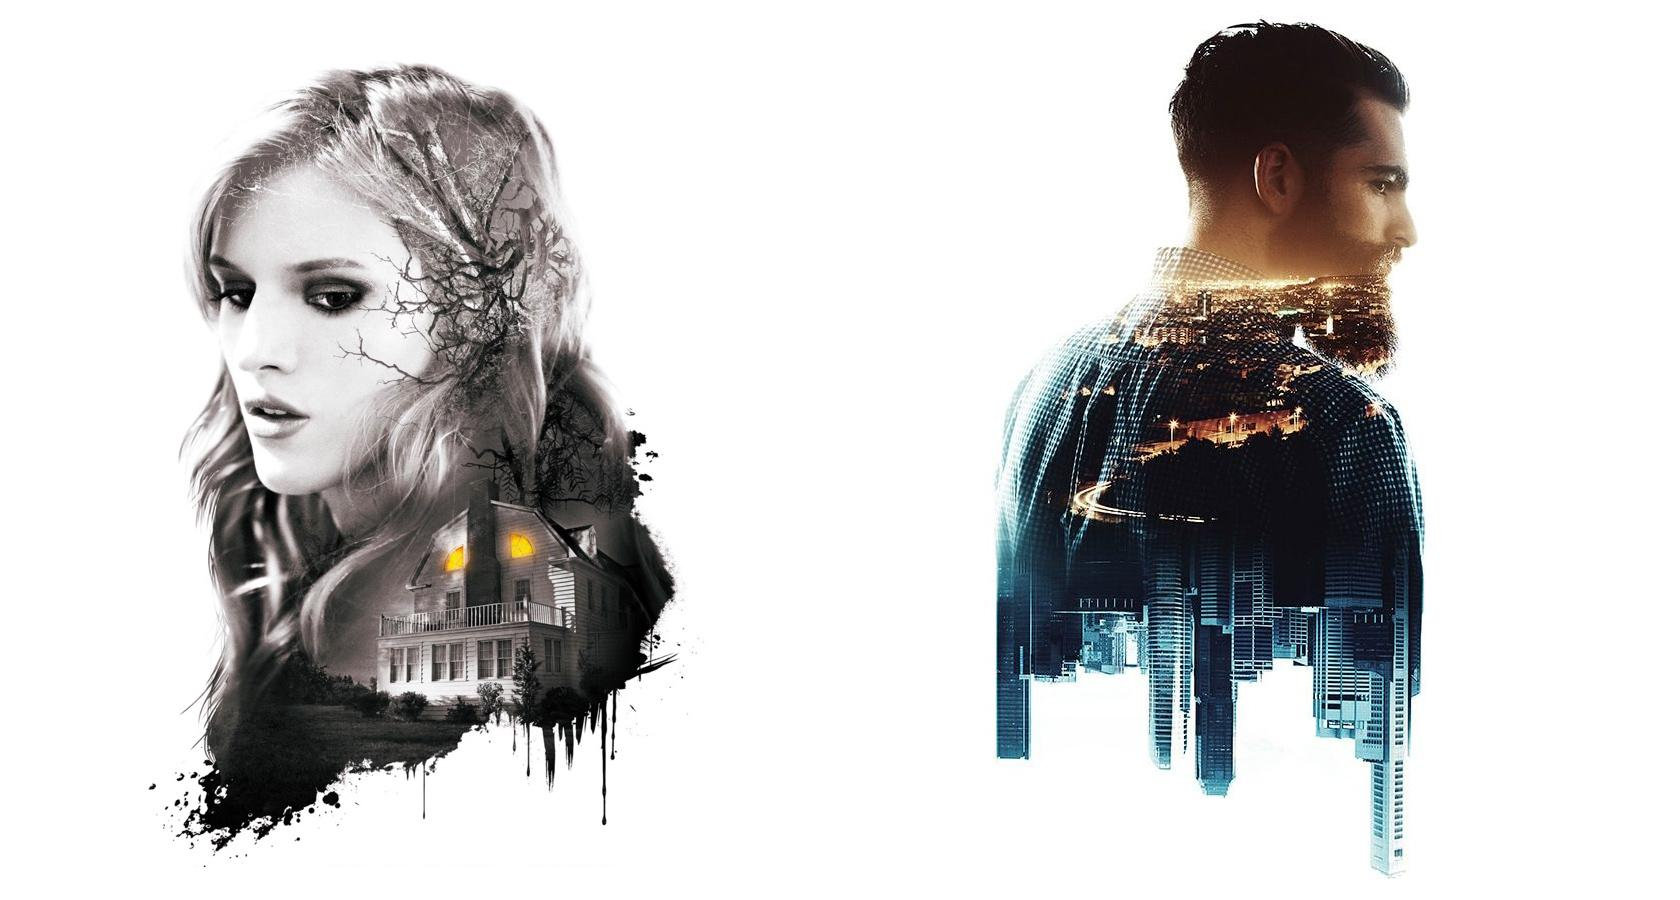 double exposure photography effect graphic design trend